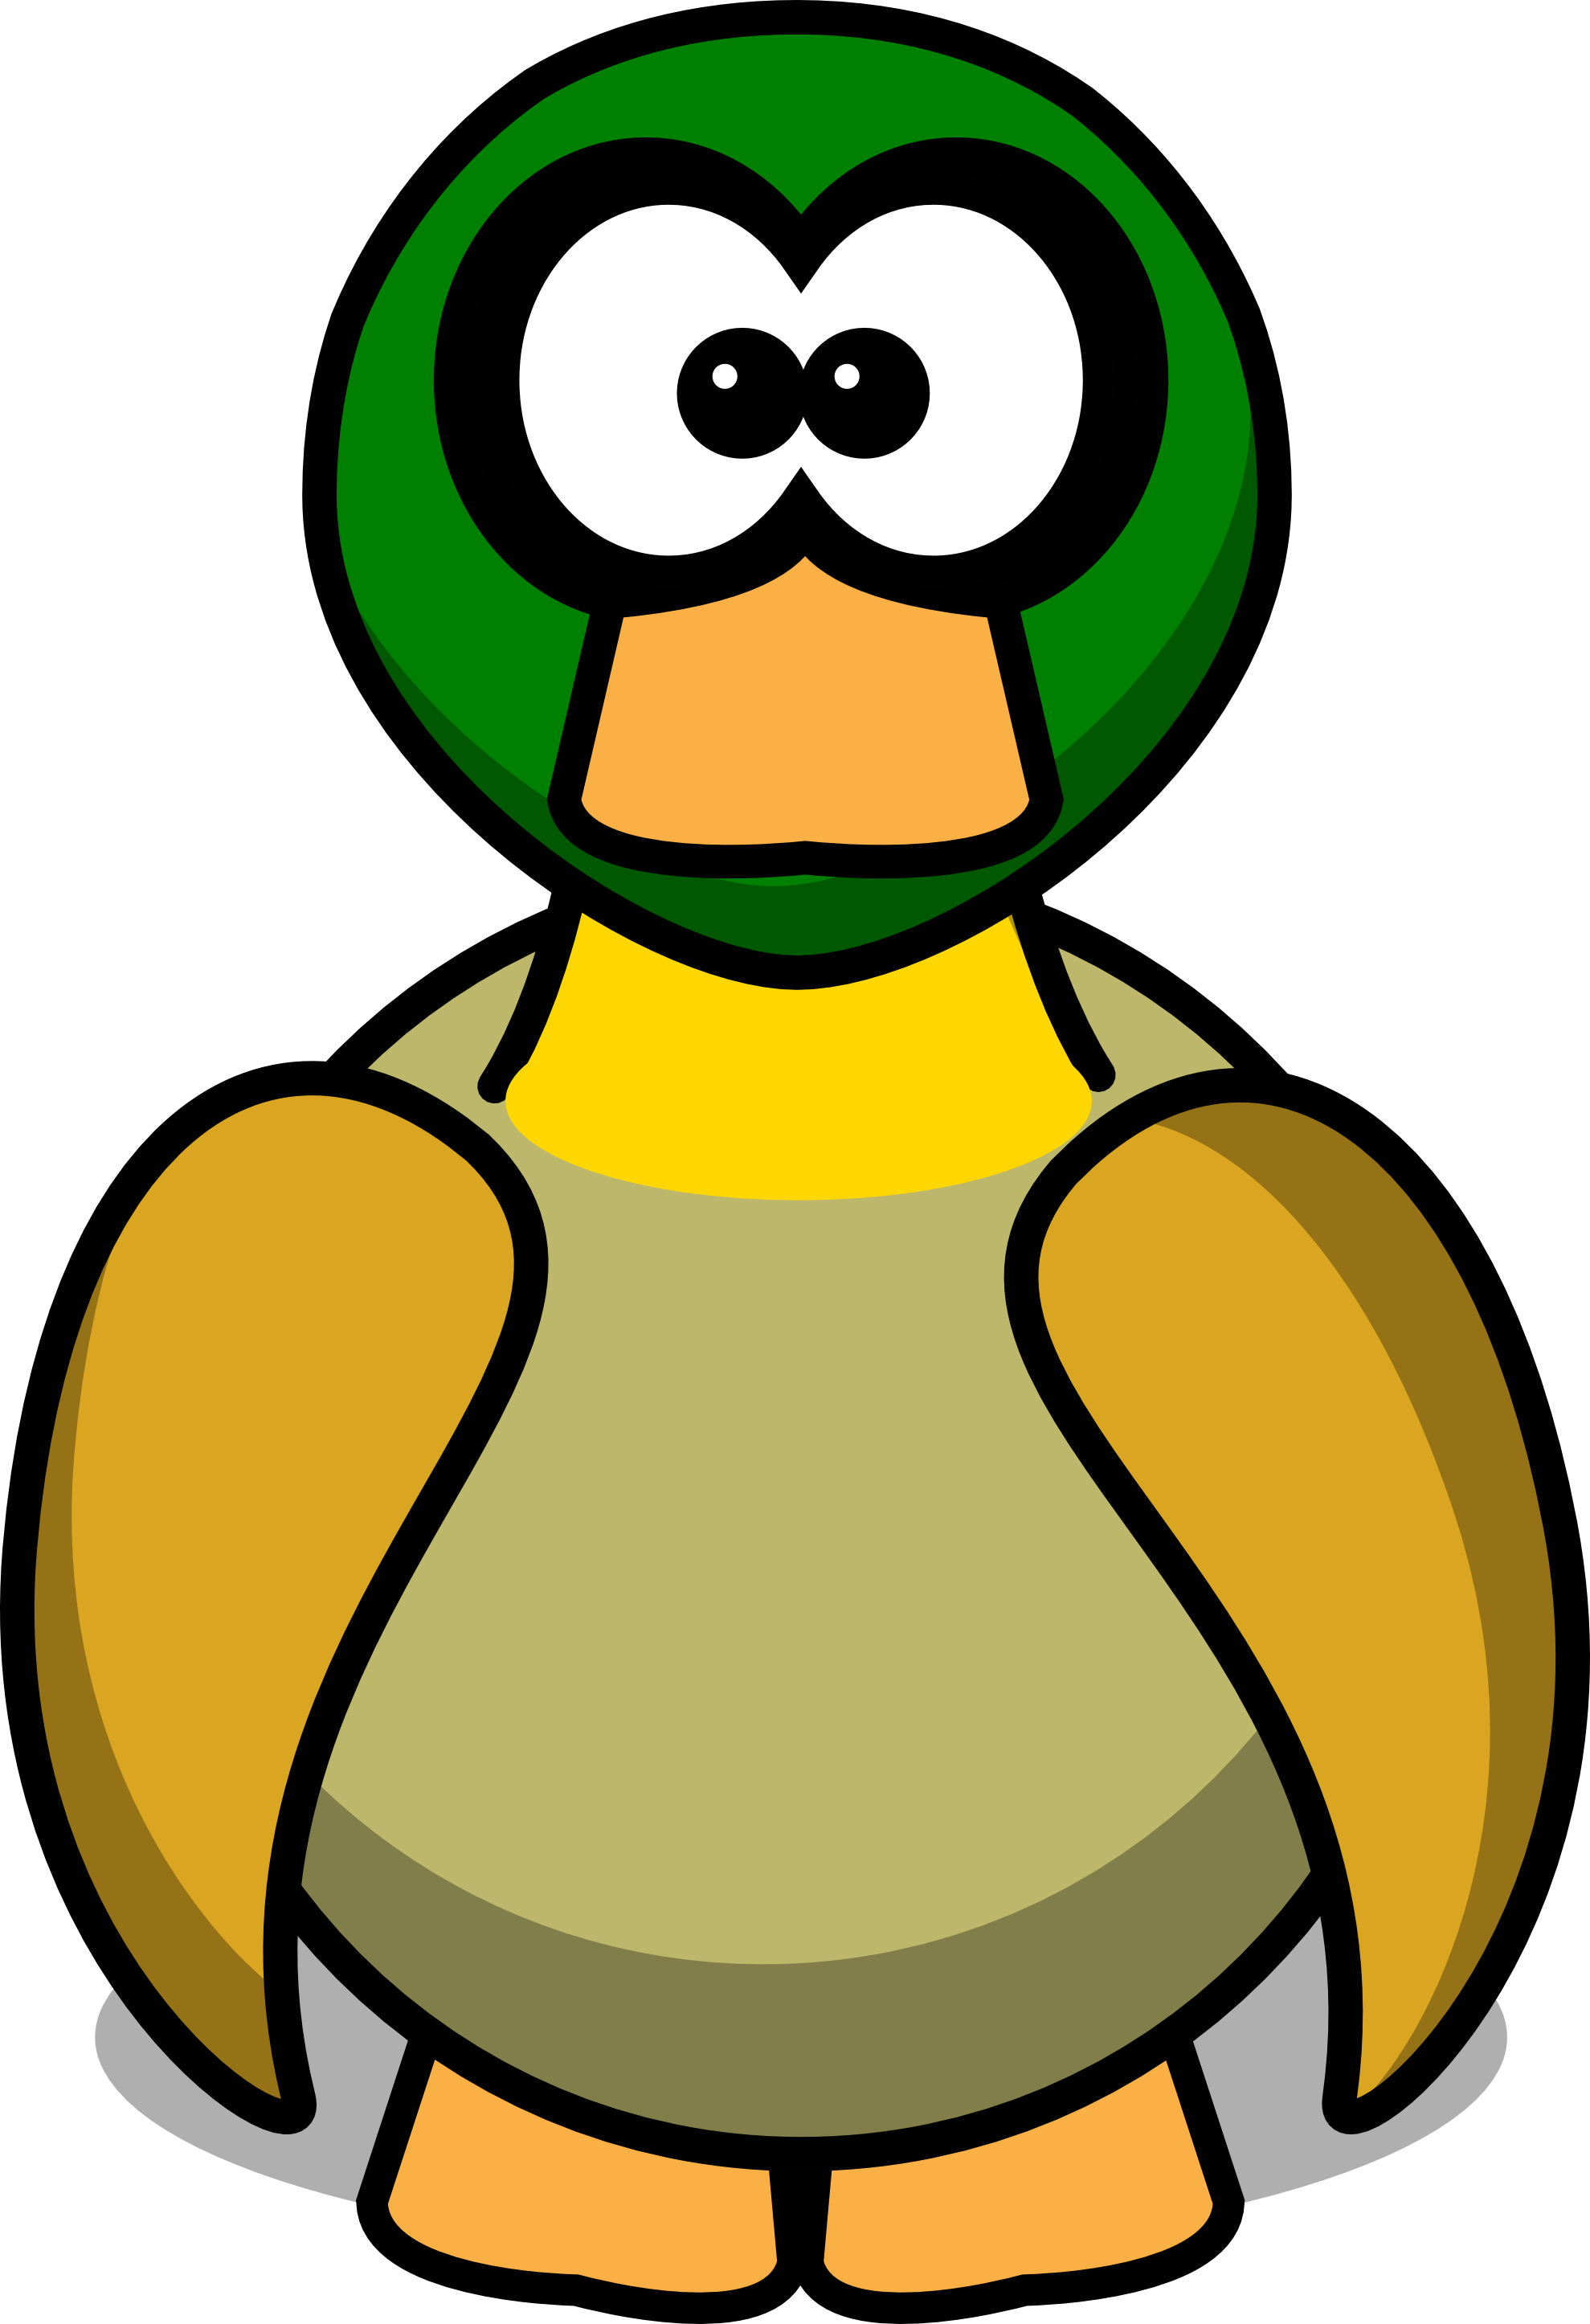 Cute funny duck cartoon. Ducks clipart simple